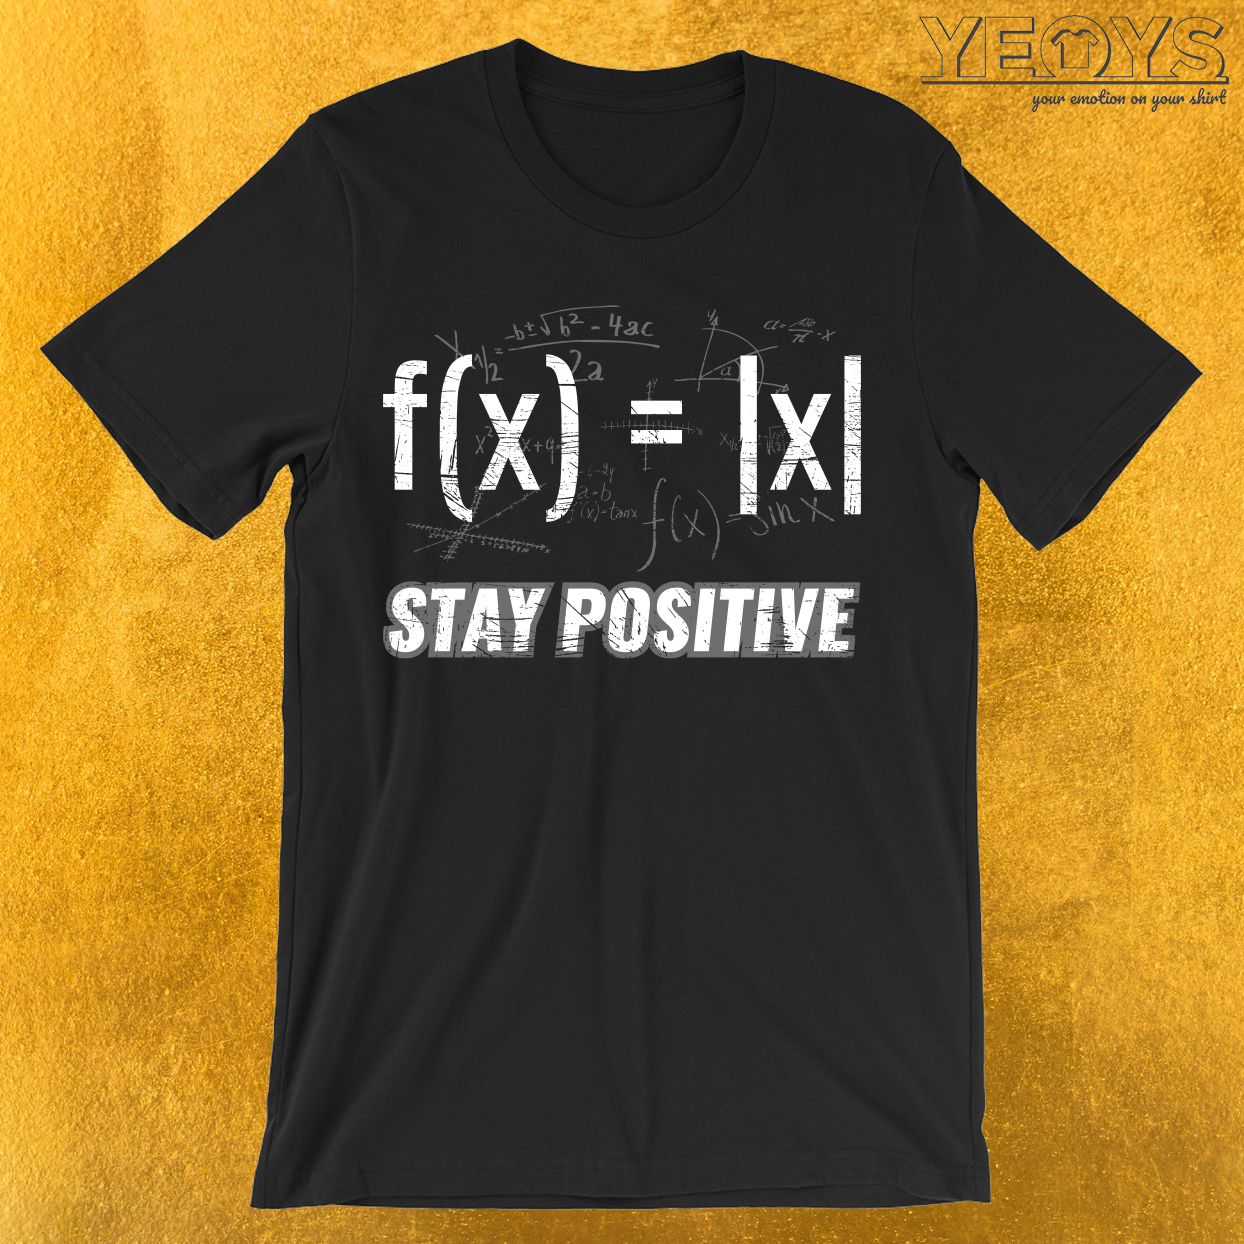 Stay Positive Avoid Negativity T-Shirt